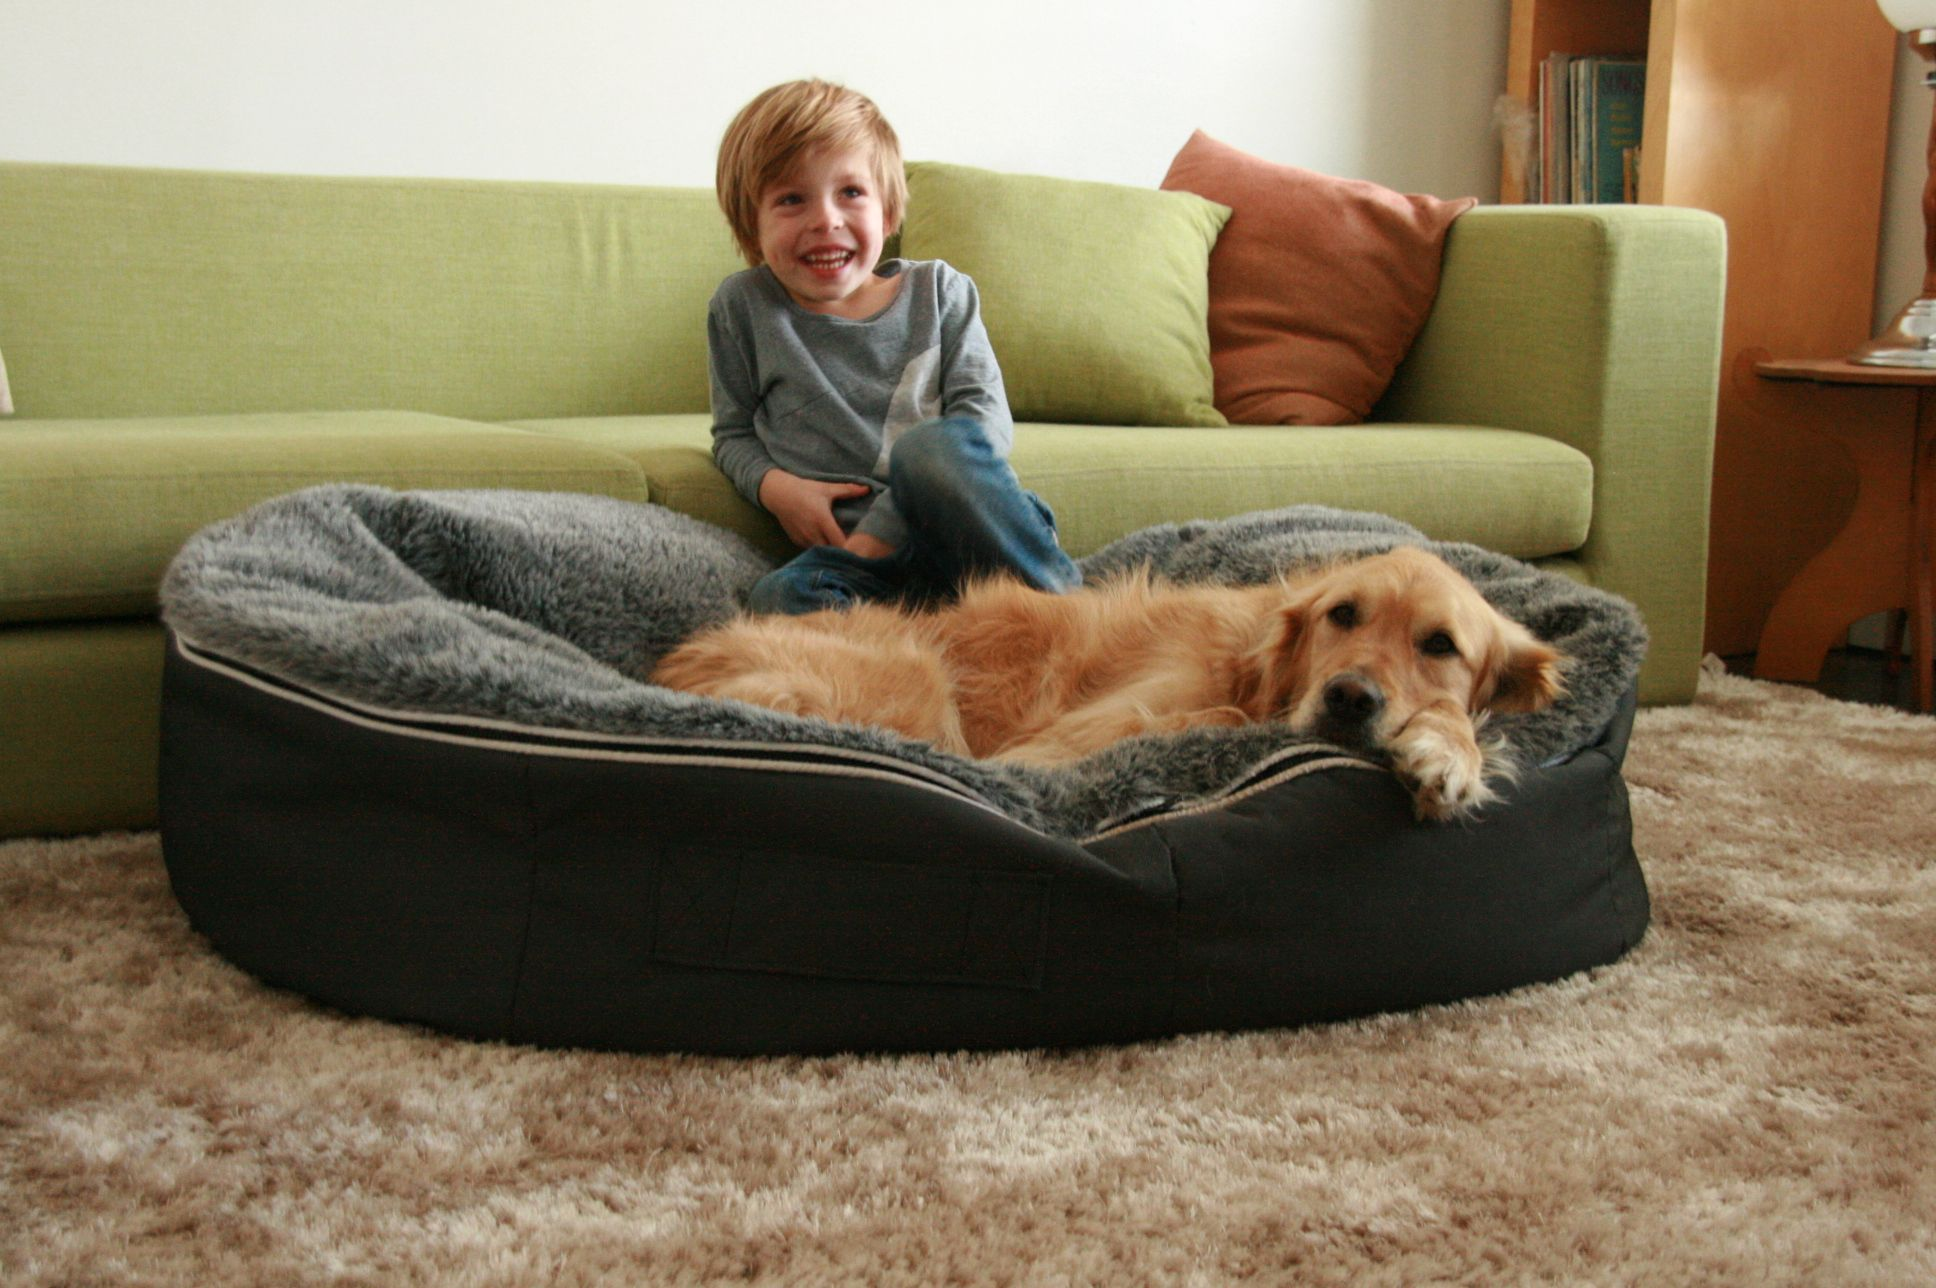 Groovy Ambient Lounge Dog Bean Bag Designer Dog Beds Dog Bed Theyellowbook Wood Chair Design Ideas Theyellowbookinfo